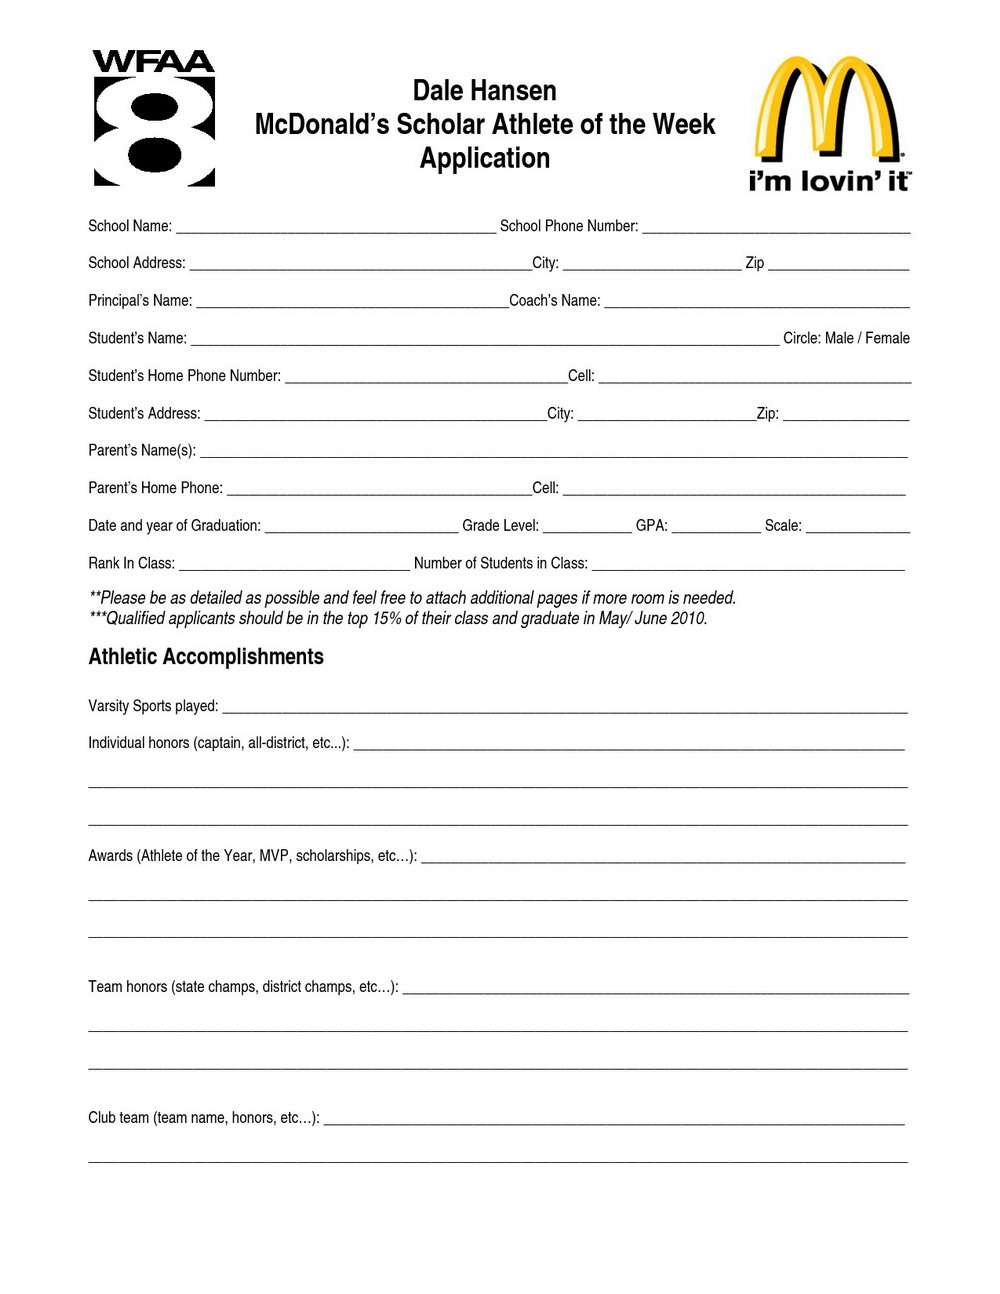 Mcd Job Application Form